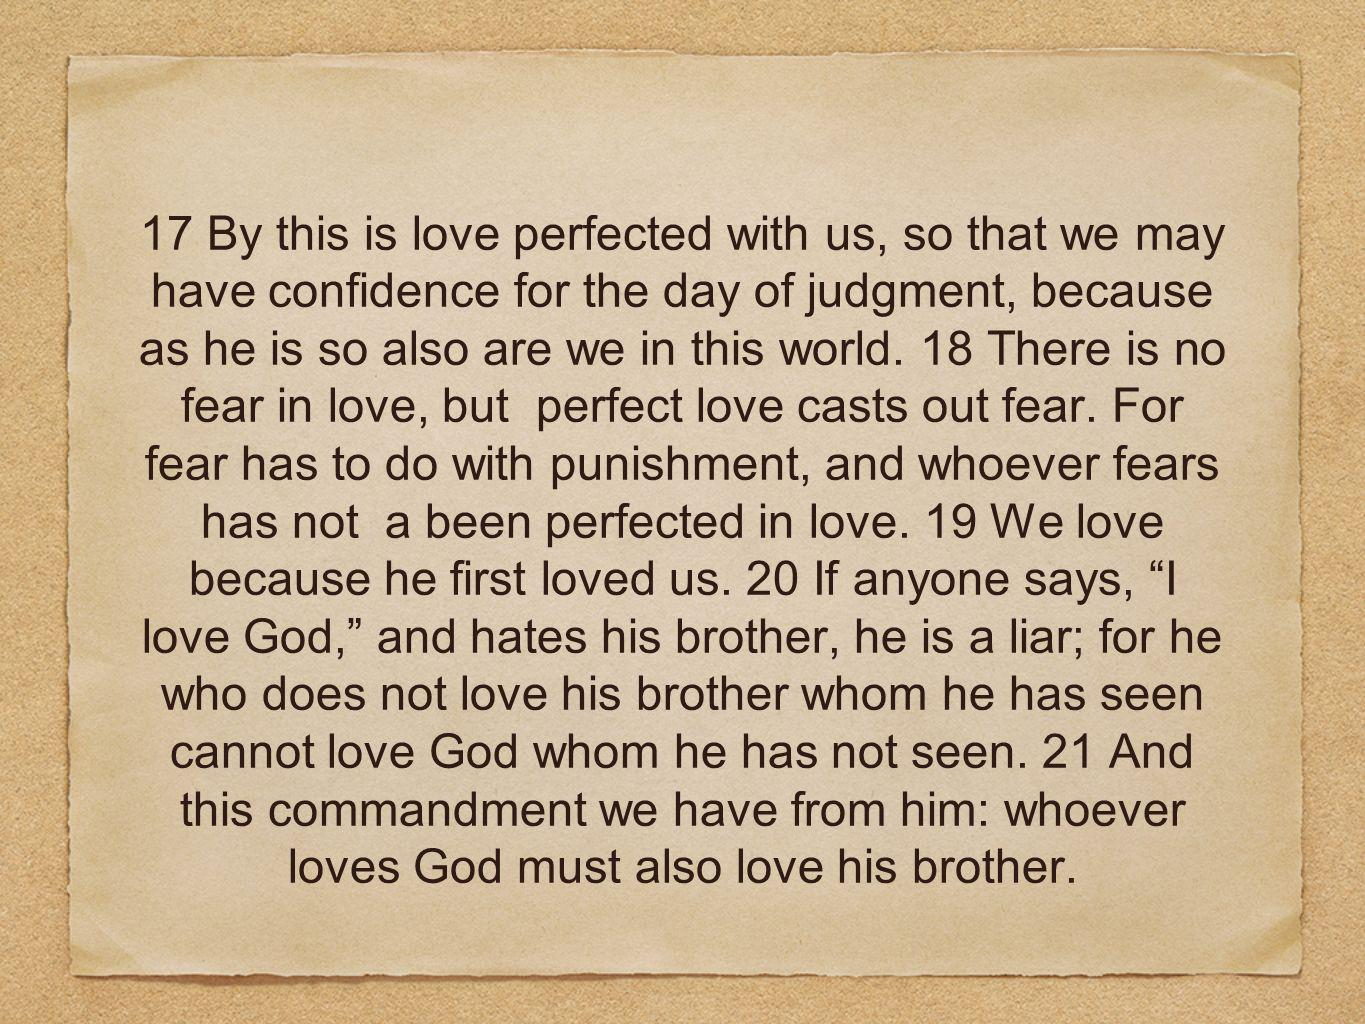 17 By this is love perfected with us, so that we may have confidence for the day of judgment, because as he is so also are we in this world.